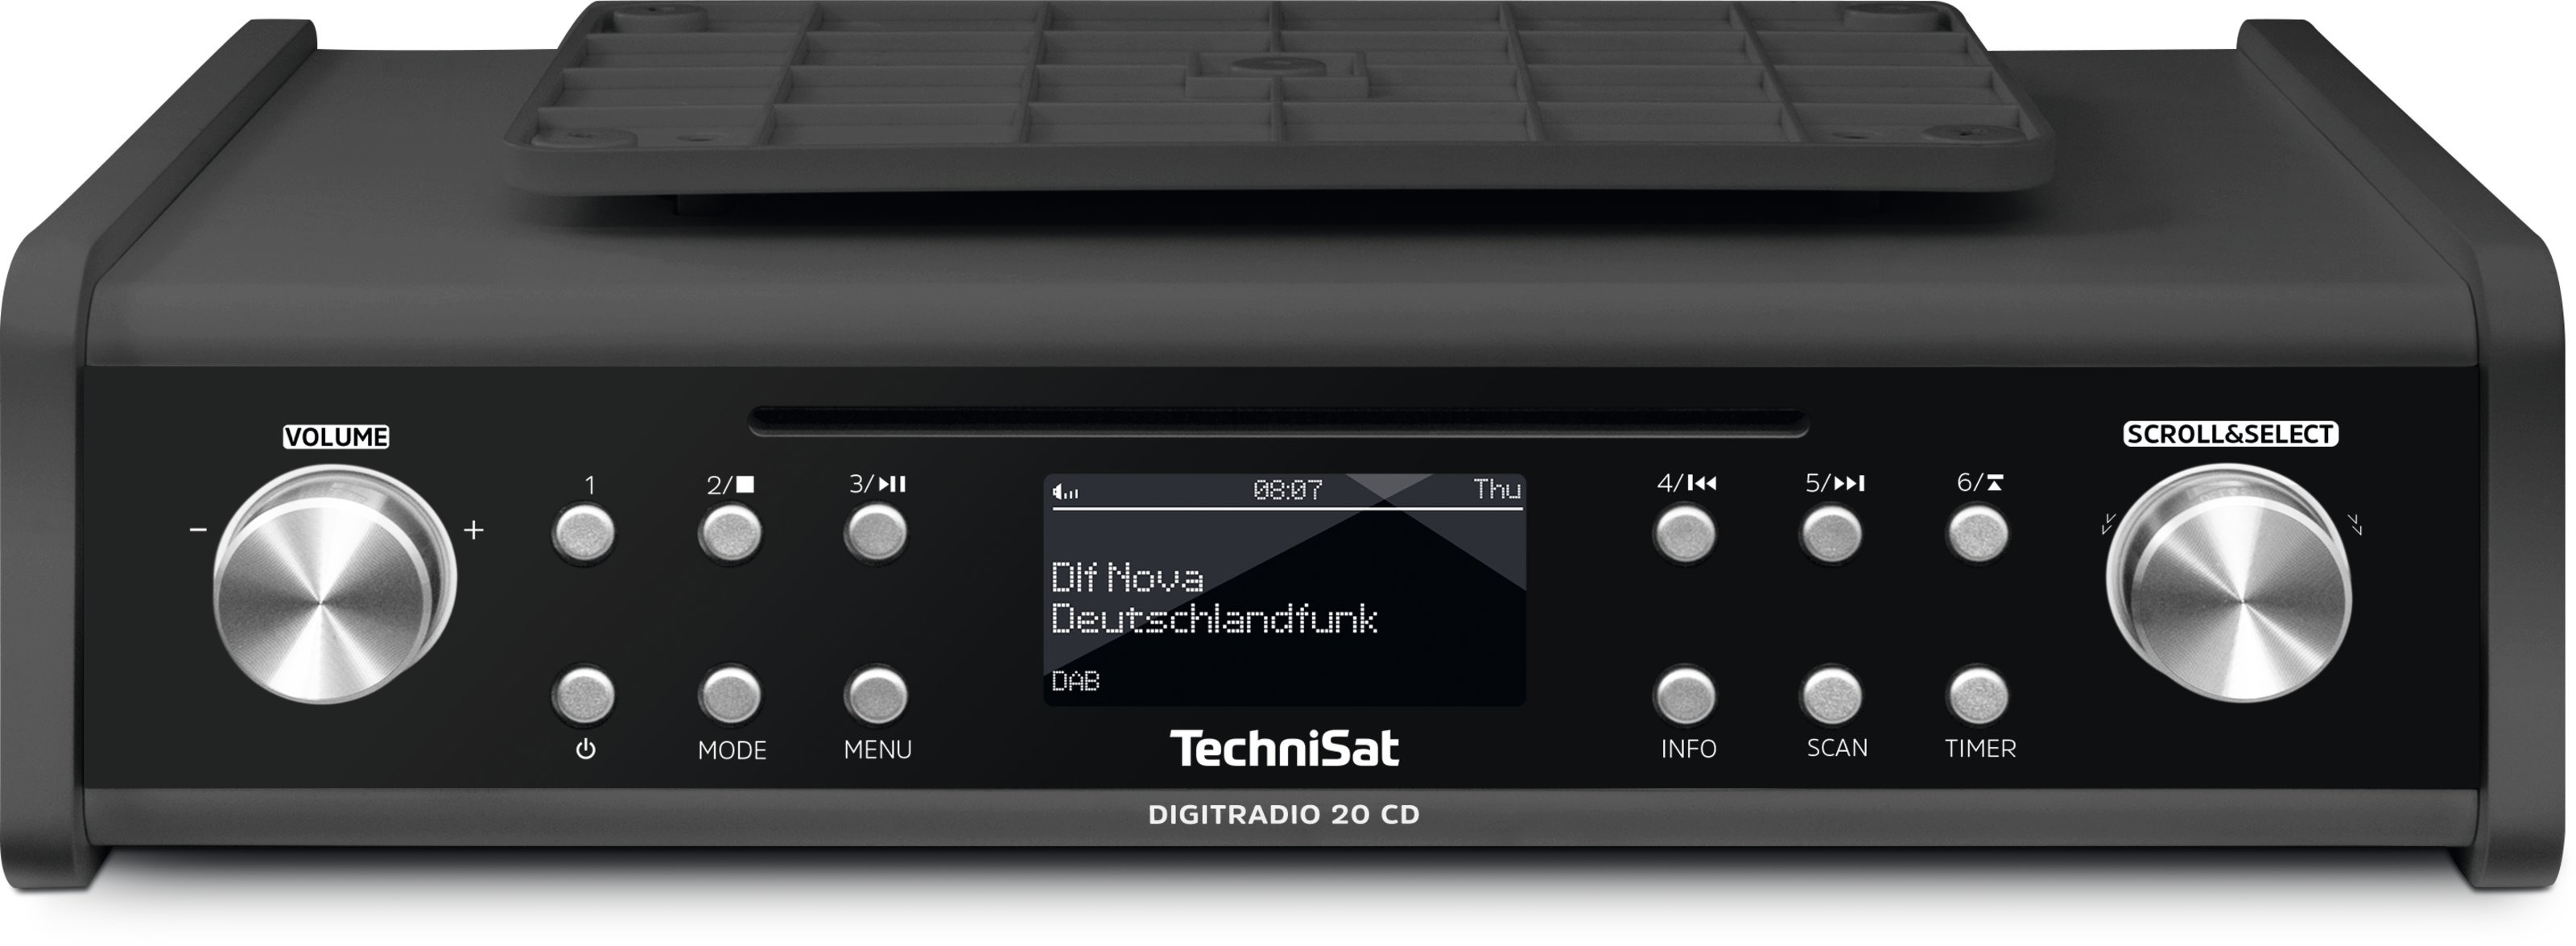 Korting TechniSat DigitRadio 20 CD dab radio